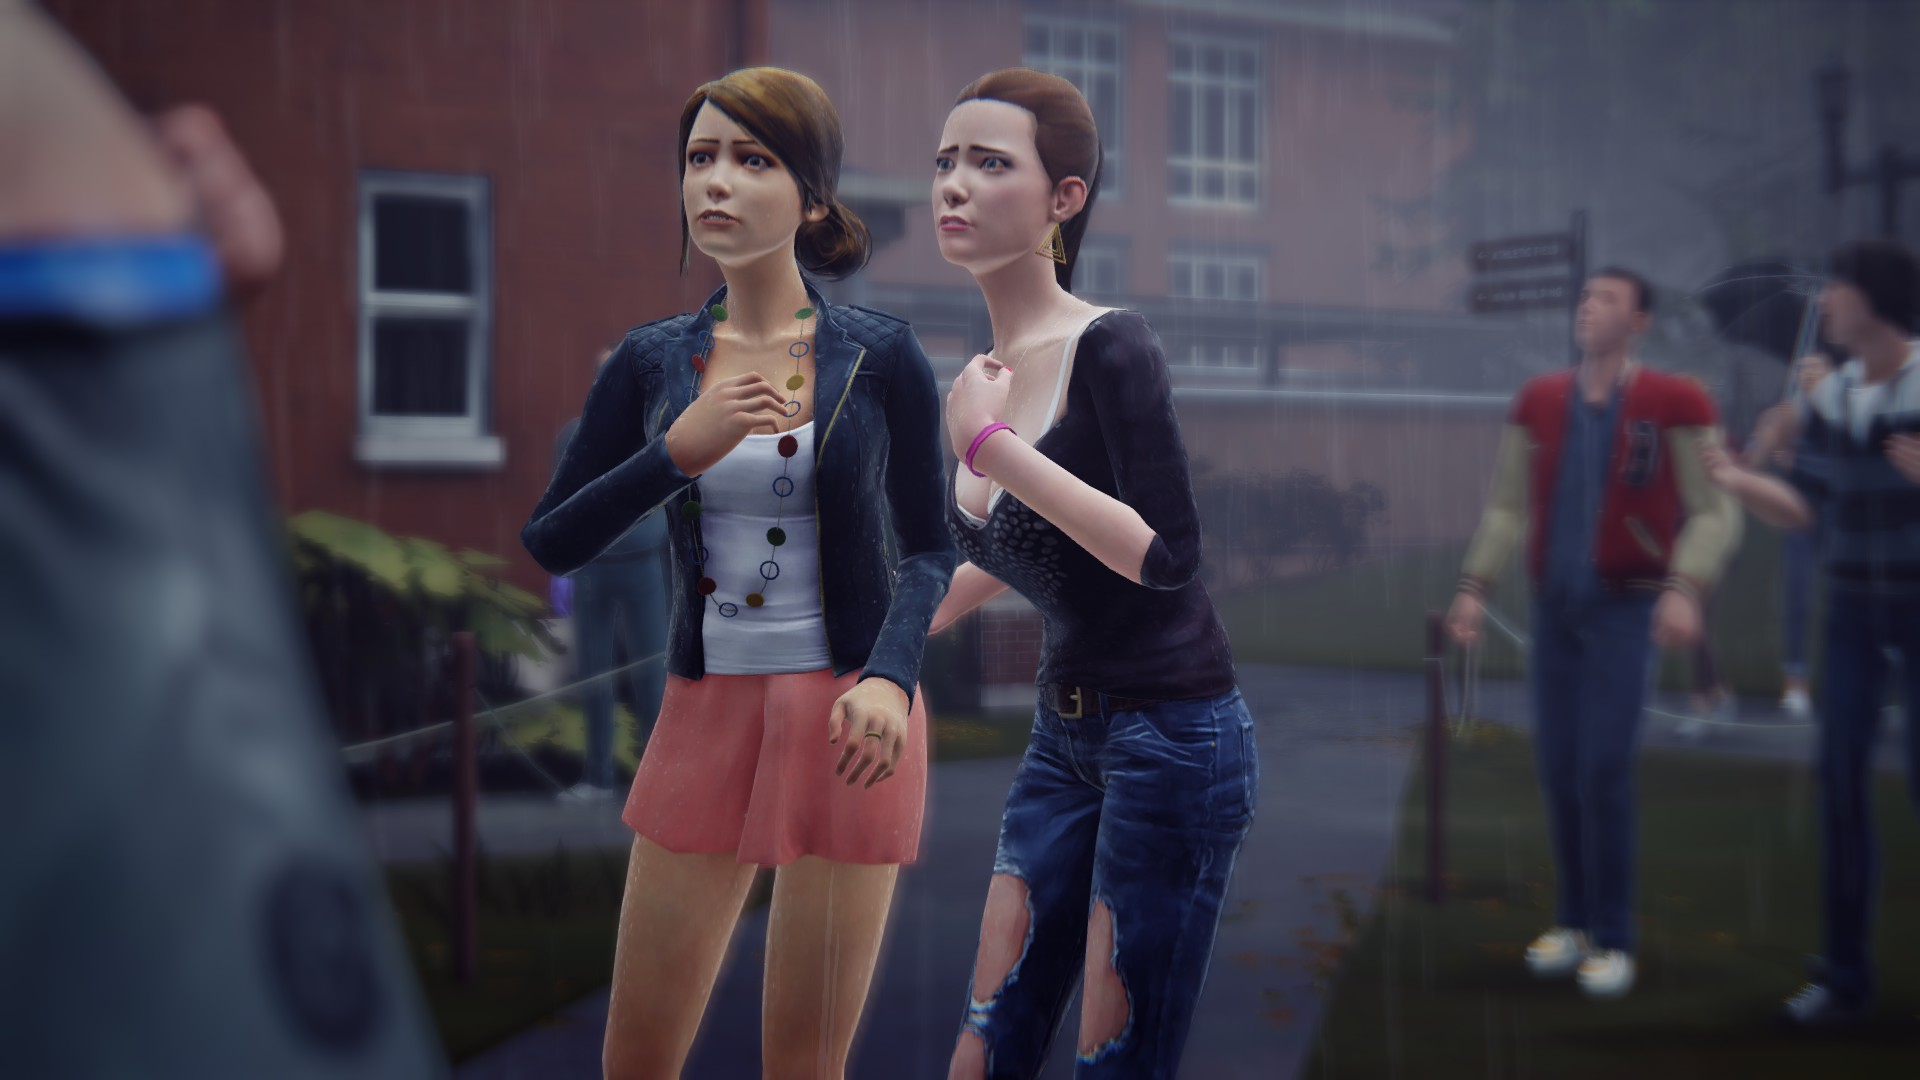 Life is strange date with kate 4